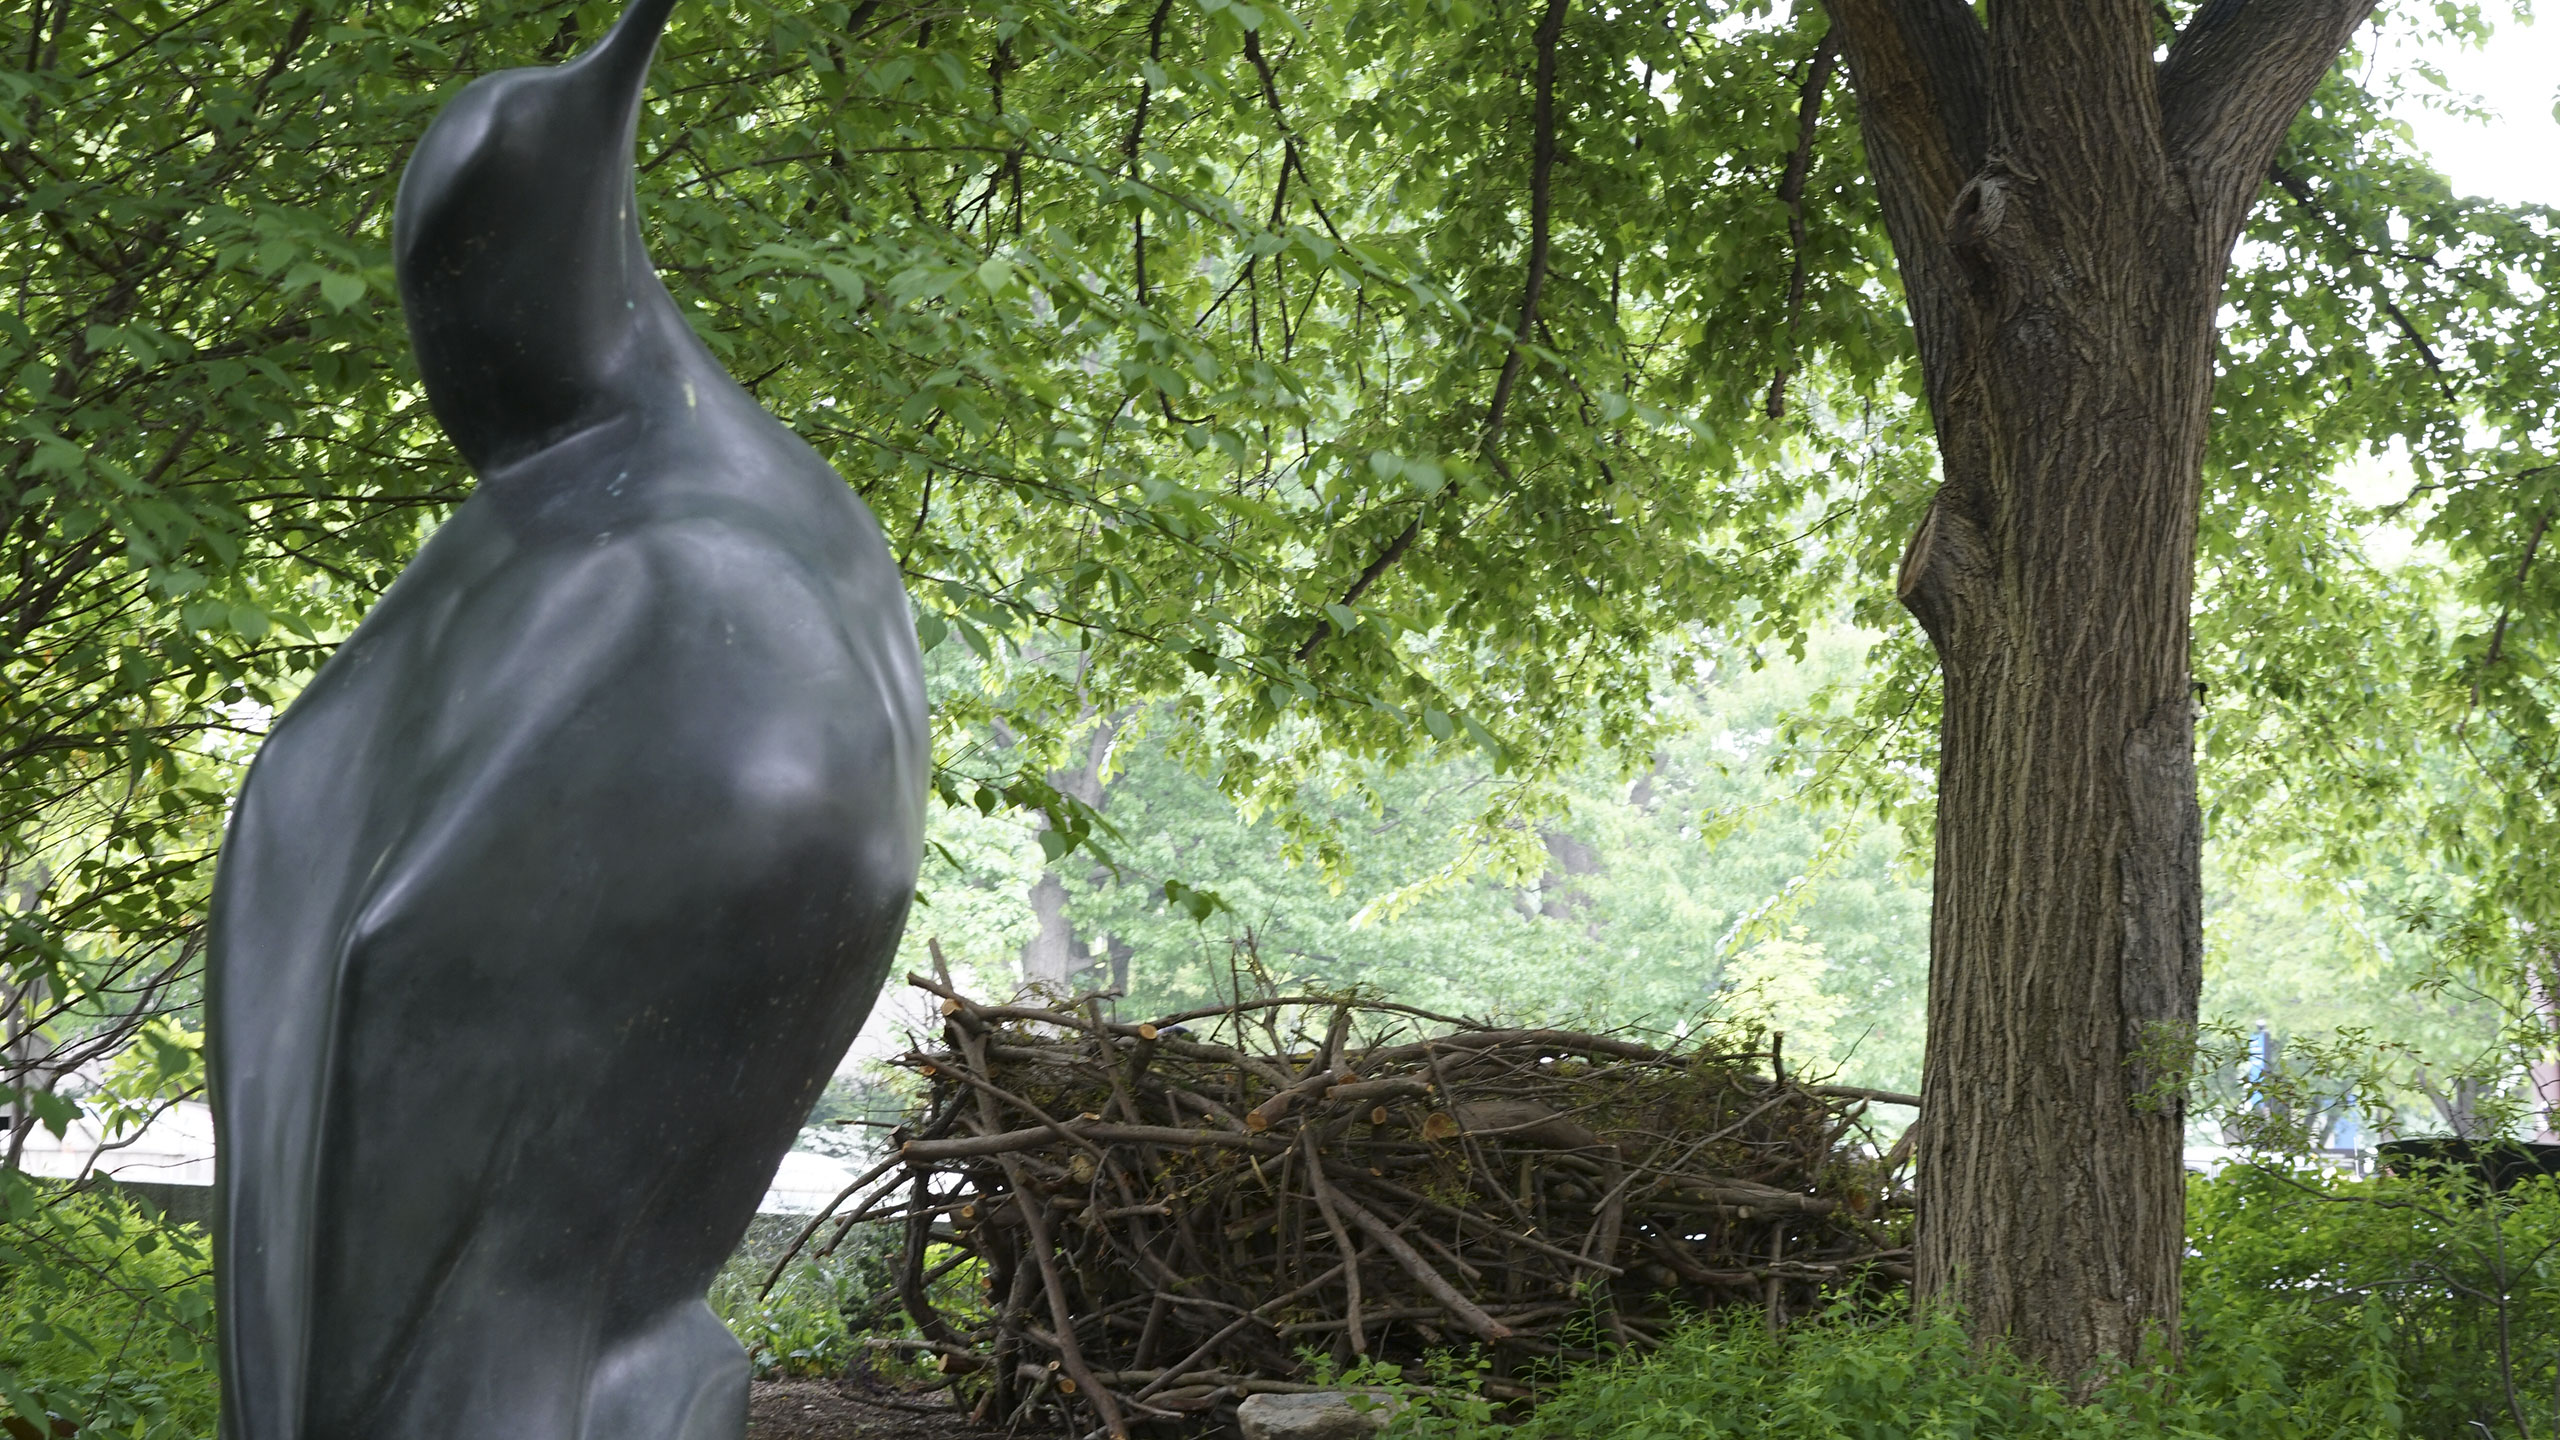 Nest installation in the Urban Bird Habitat outside of the National Museum of American History